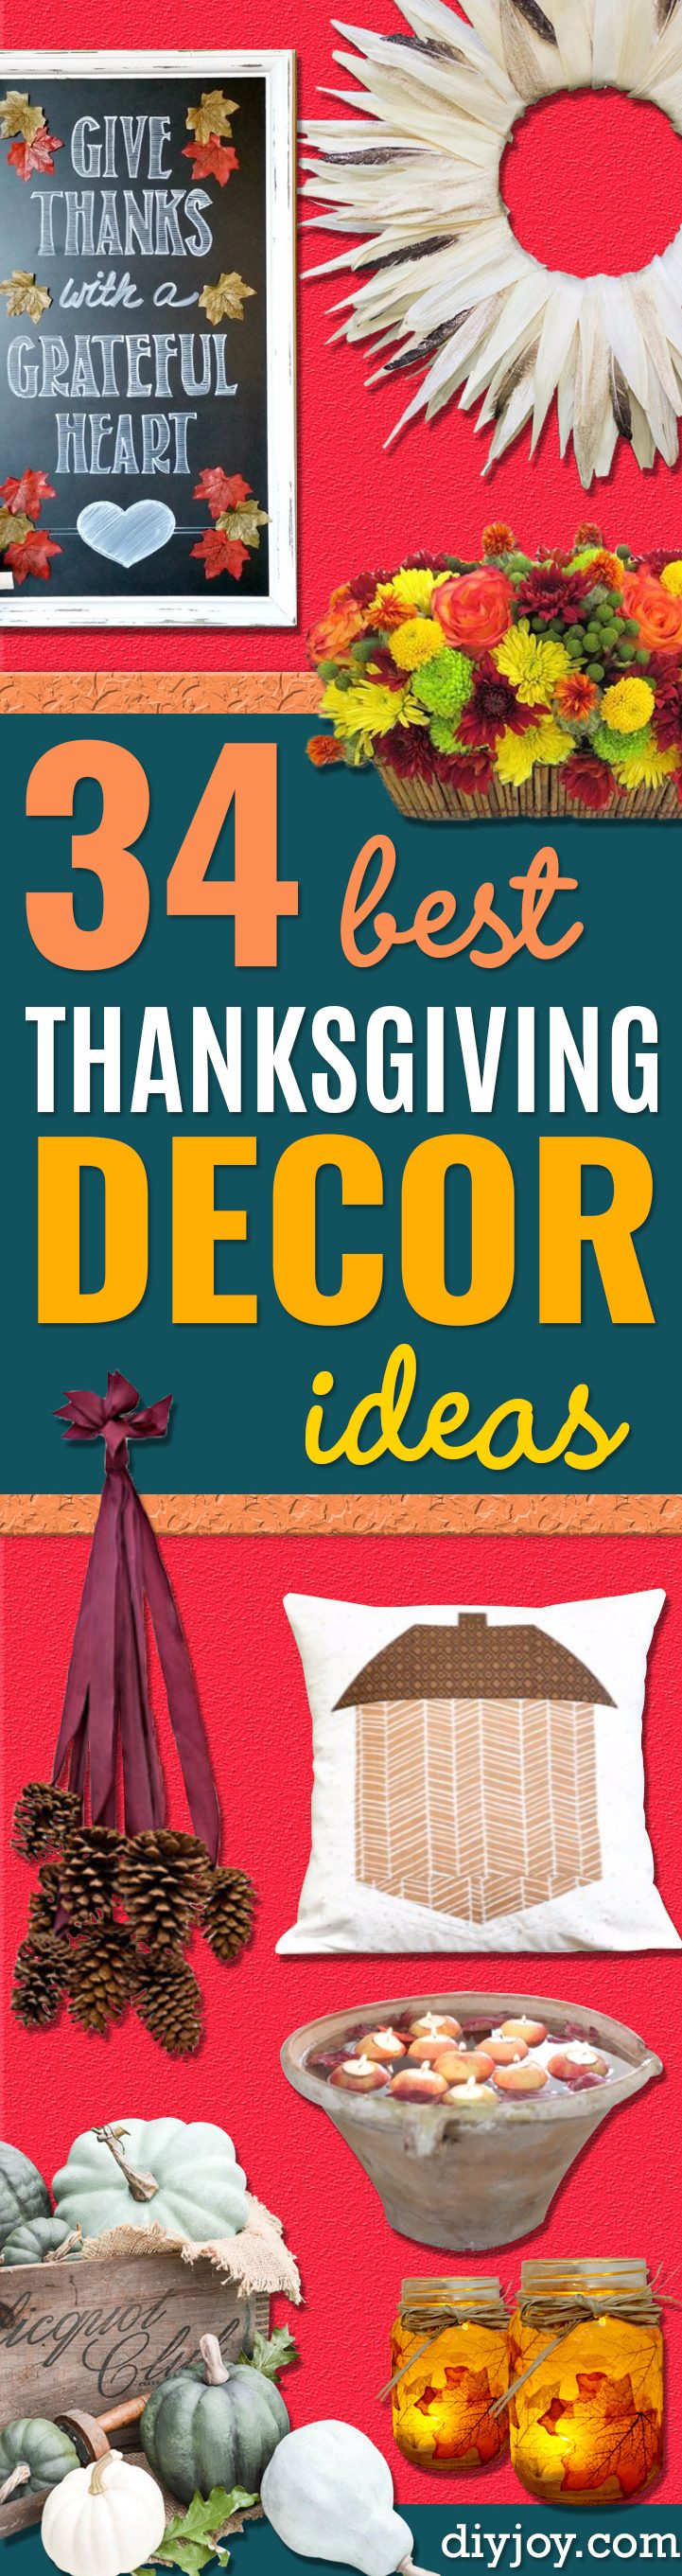 Best Thanksgiving Centerpieces and Table Decor - - Creative Crafts for Your Thanksgiving Dinner Table. Mason Jars, Flowers, Leaves, Candles and Pumkin Decorations for Your FallHome Decor